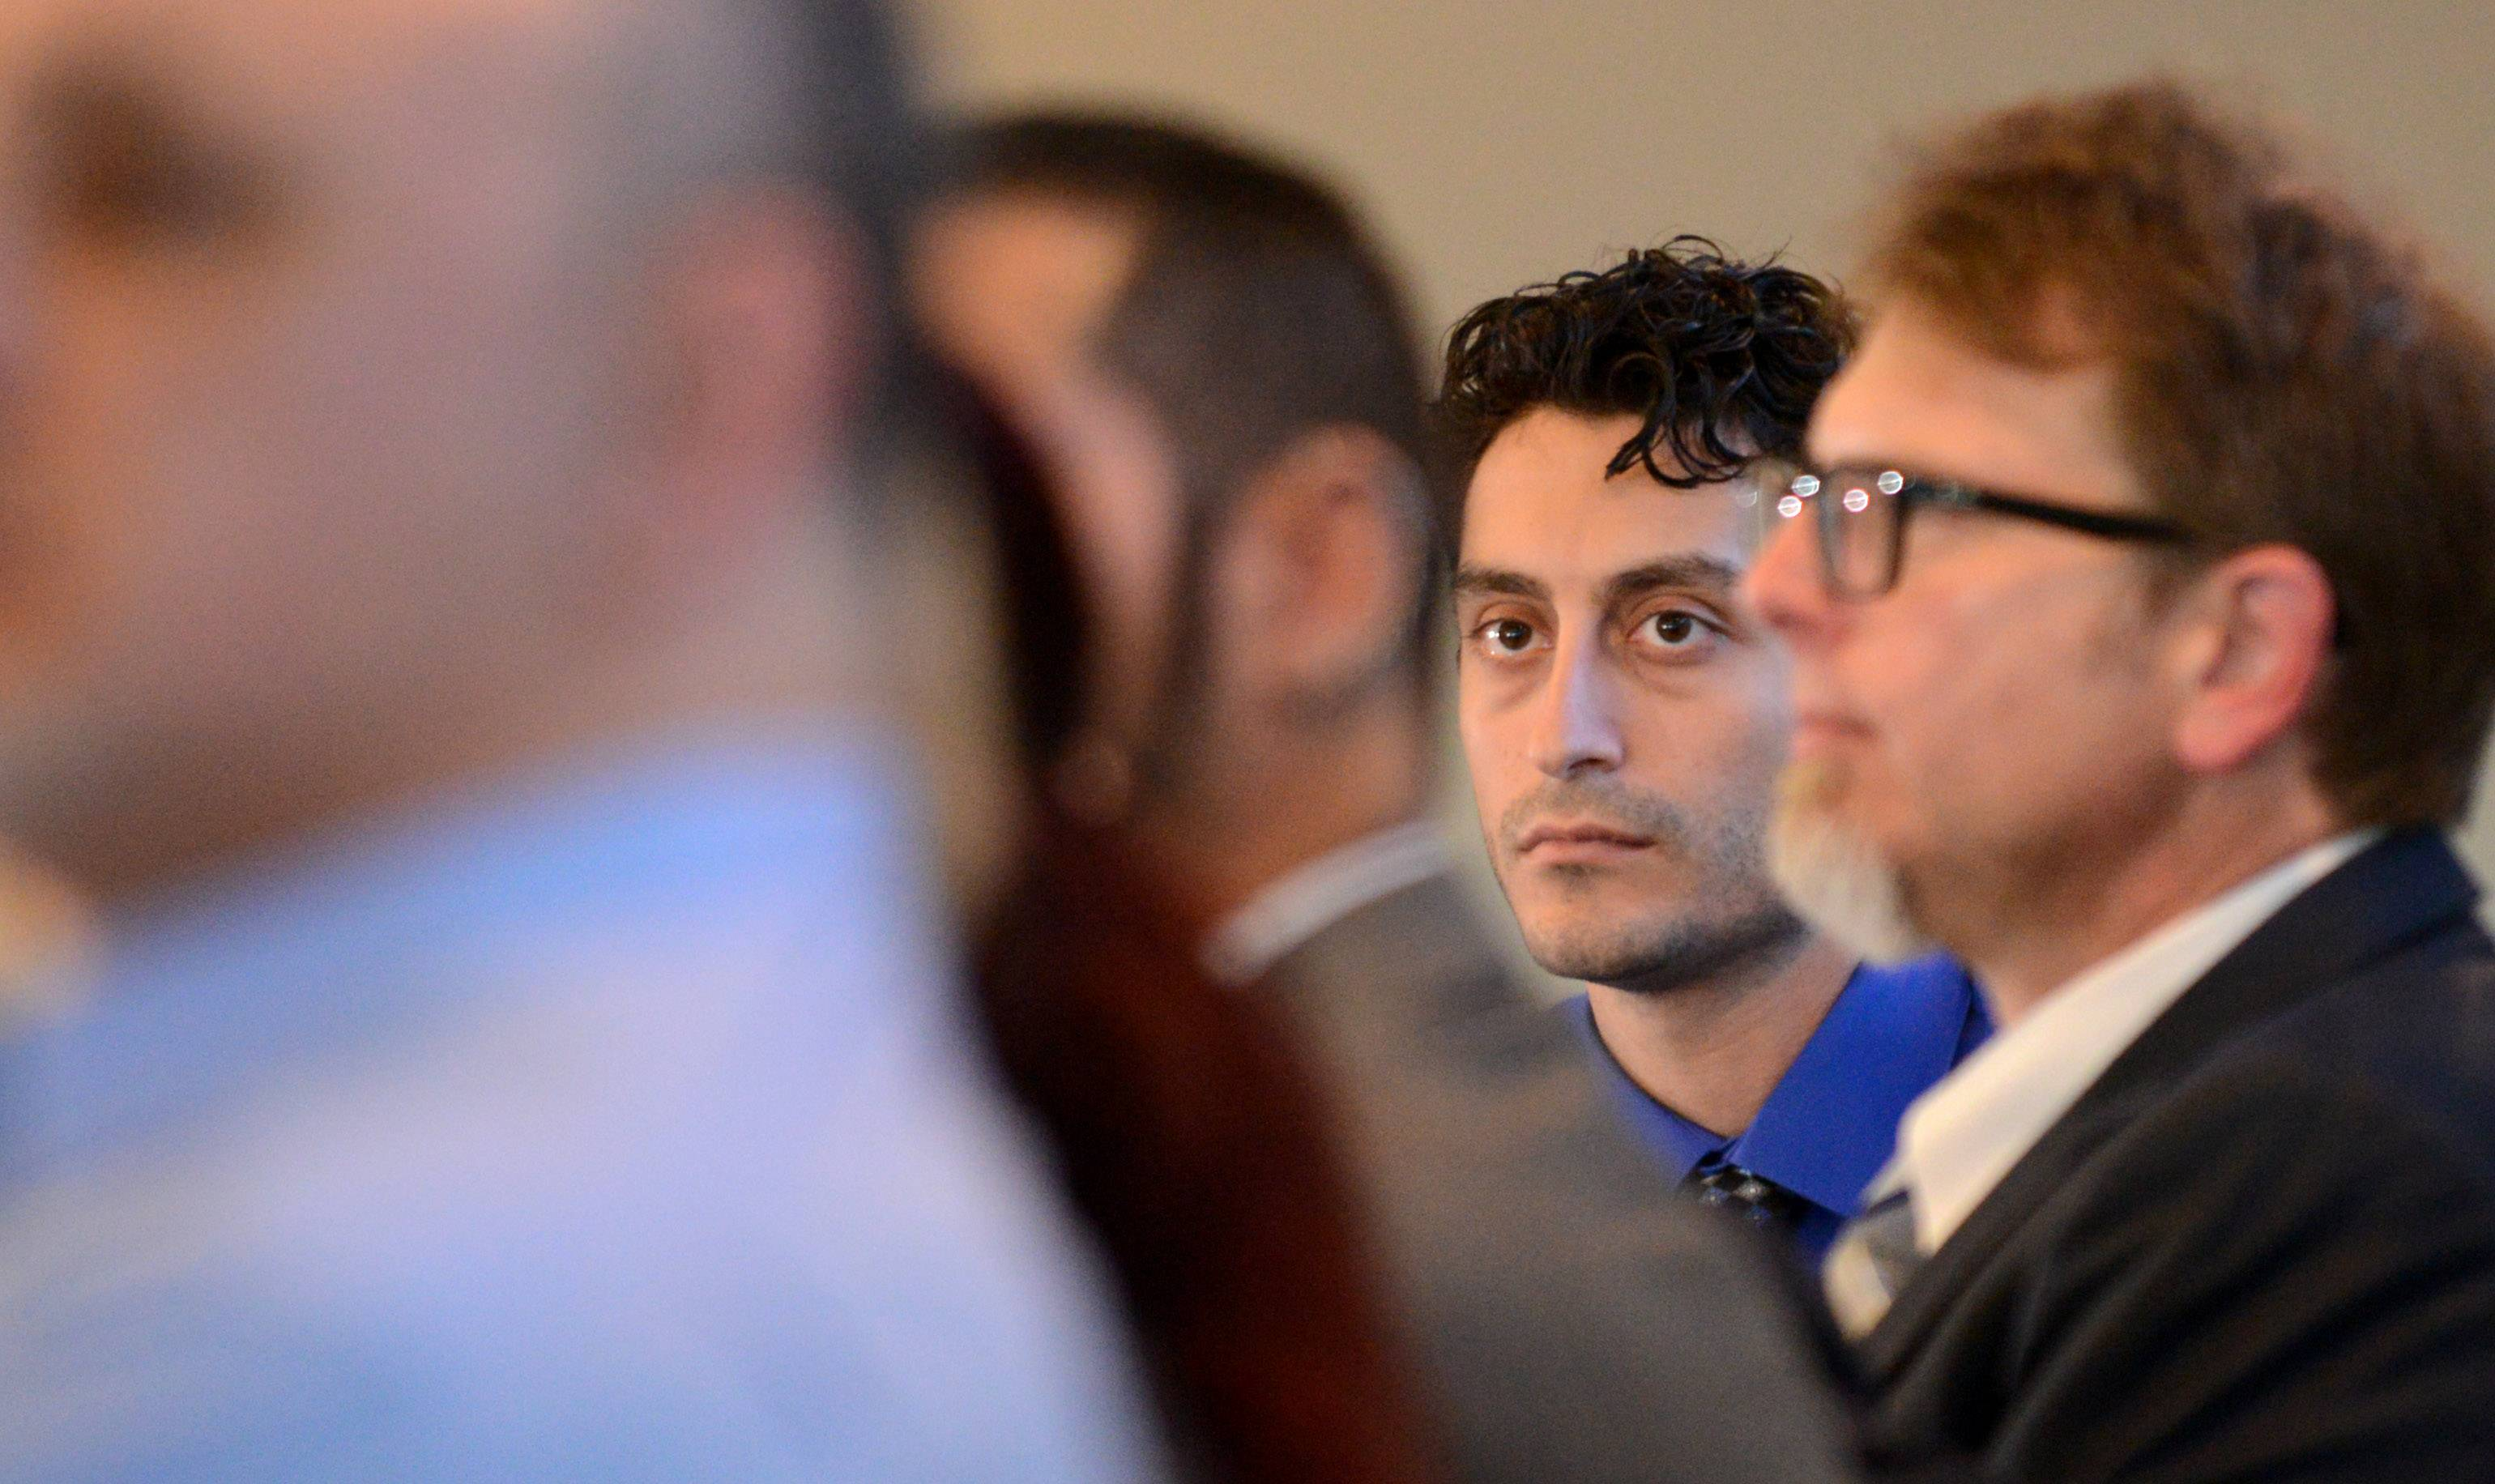 Mario Casciaro, center, listens as he's introduced at a 2015 event featuring stories of wrongful convictions hosted by the Kane County Public Defender's Office.